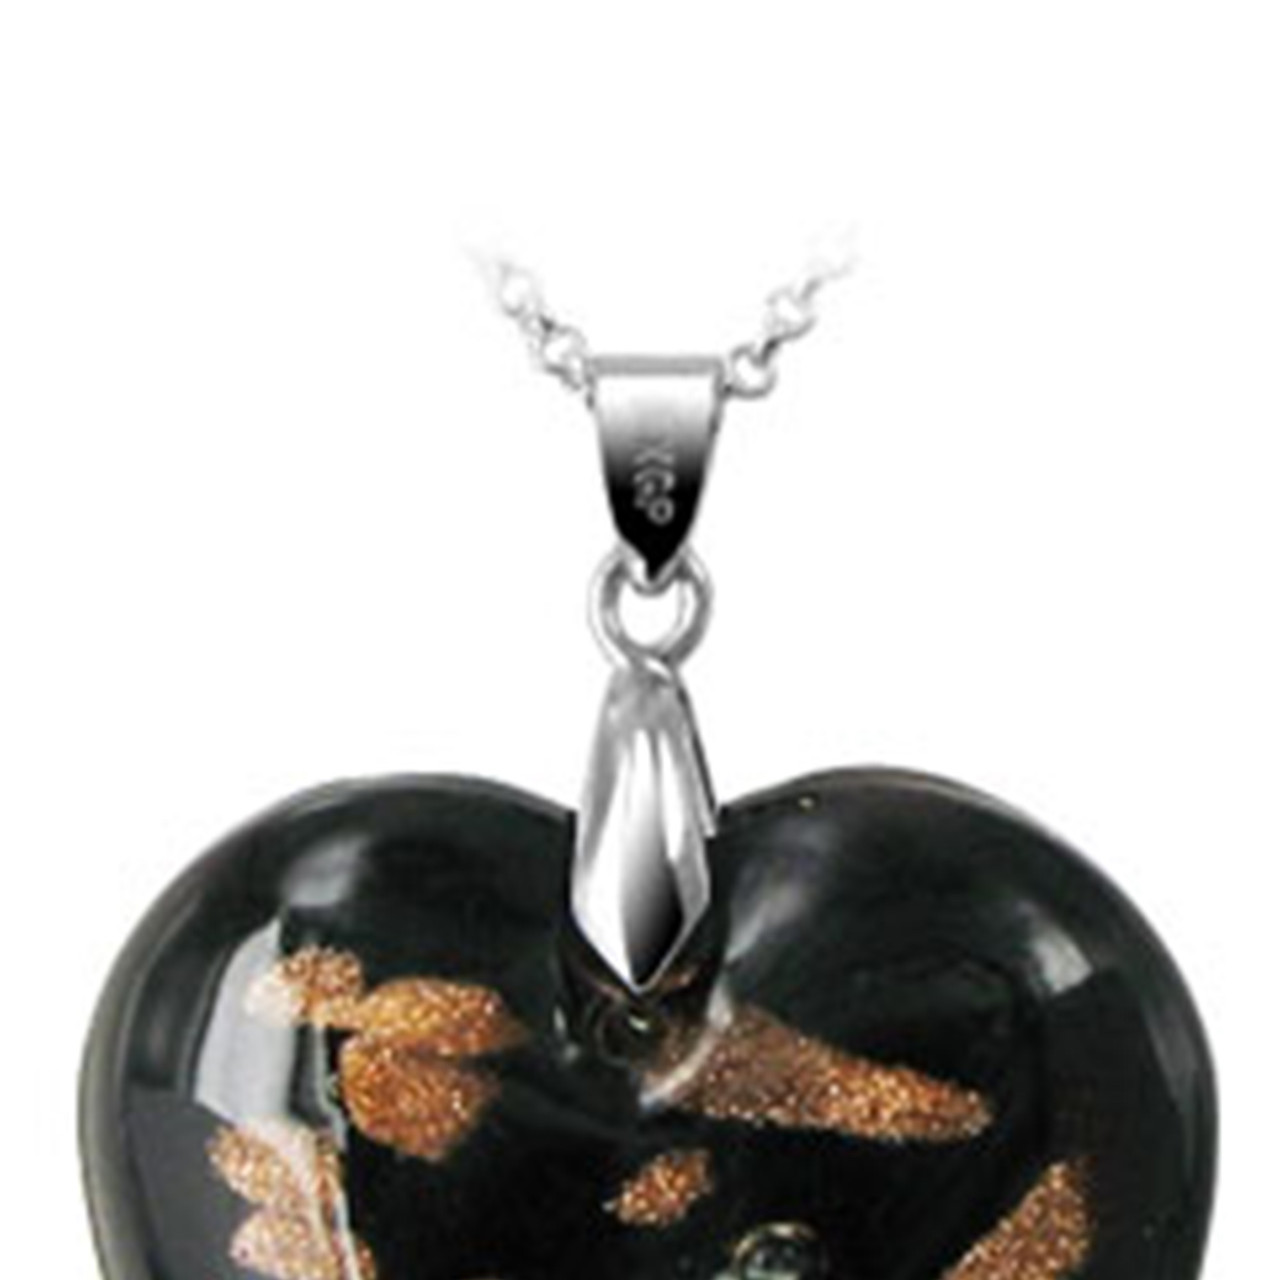 1.3 x 1.2 inch Black Color Floral Designed 6mm Thick Heart Glass Stainless Steel Bail Pendant